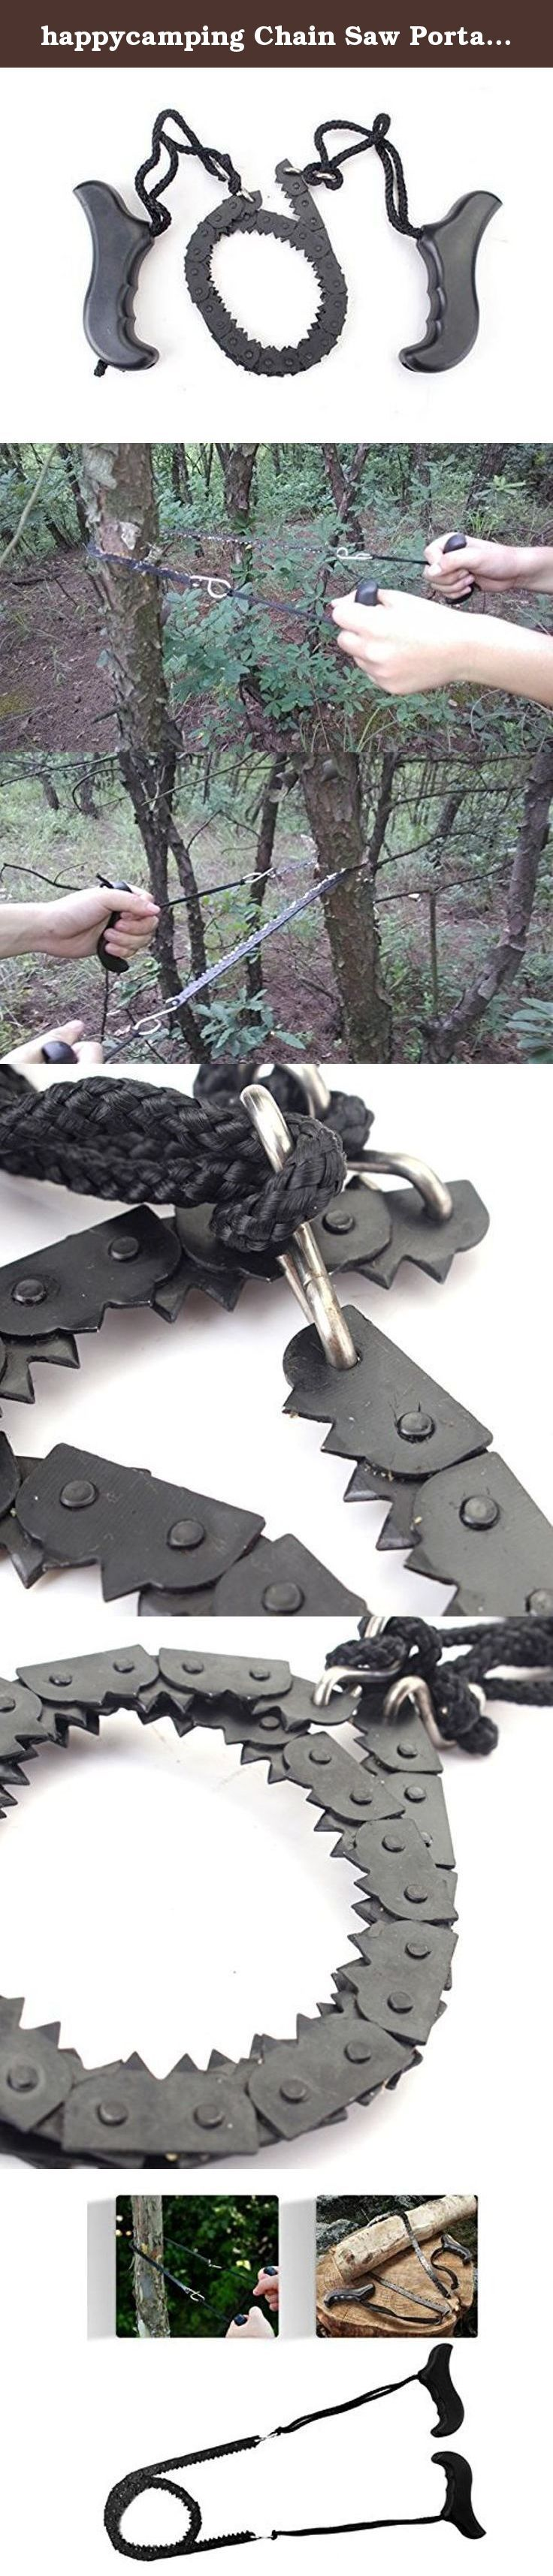 happycamping Chain Saw Portable Folding Pocket Survival Hand Chain Pocket Chain Saw Tool - 39.7 Inches Long. happycamping Folding Pocket Chainsaw with 39 inch long, perfect Compact Pocket Survival chainsaw For all -Cuts wood faster than a conventional saw. - Easy to re sharpen even after years of use. - Perfect length for for your arms pull. - Great for survival hunting and much more. - Easy to carry in a back pack or pocket. FEATURES Item: Pocket Chain saw Size: 39 inch long((including...